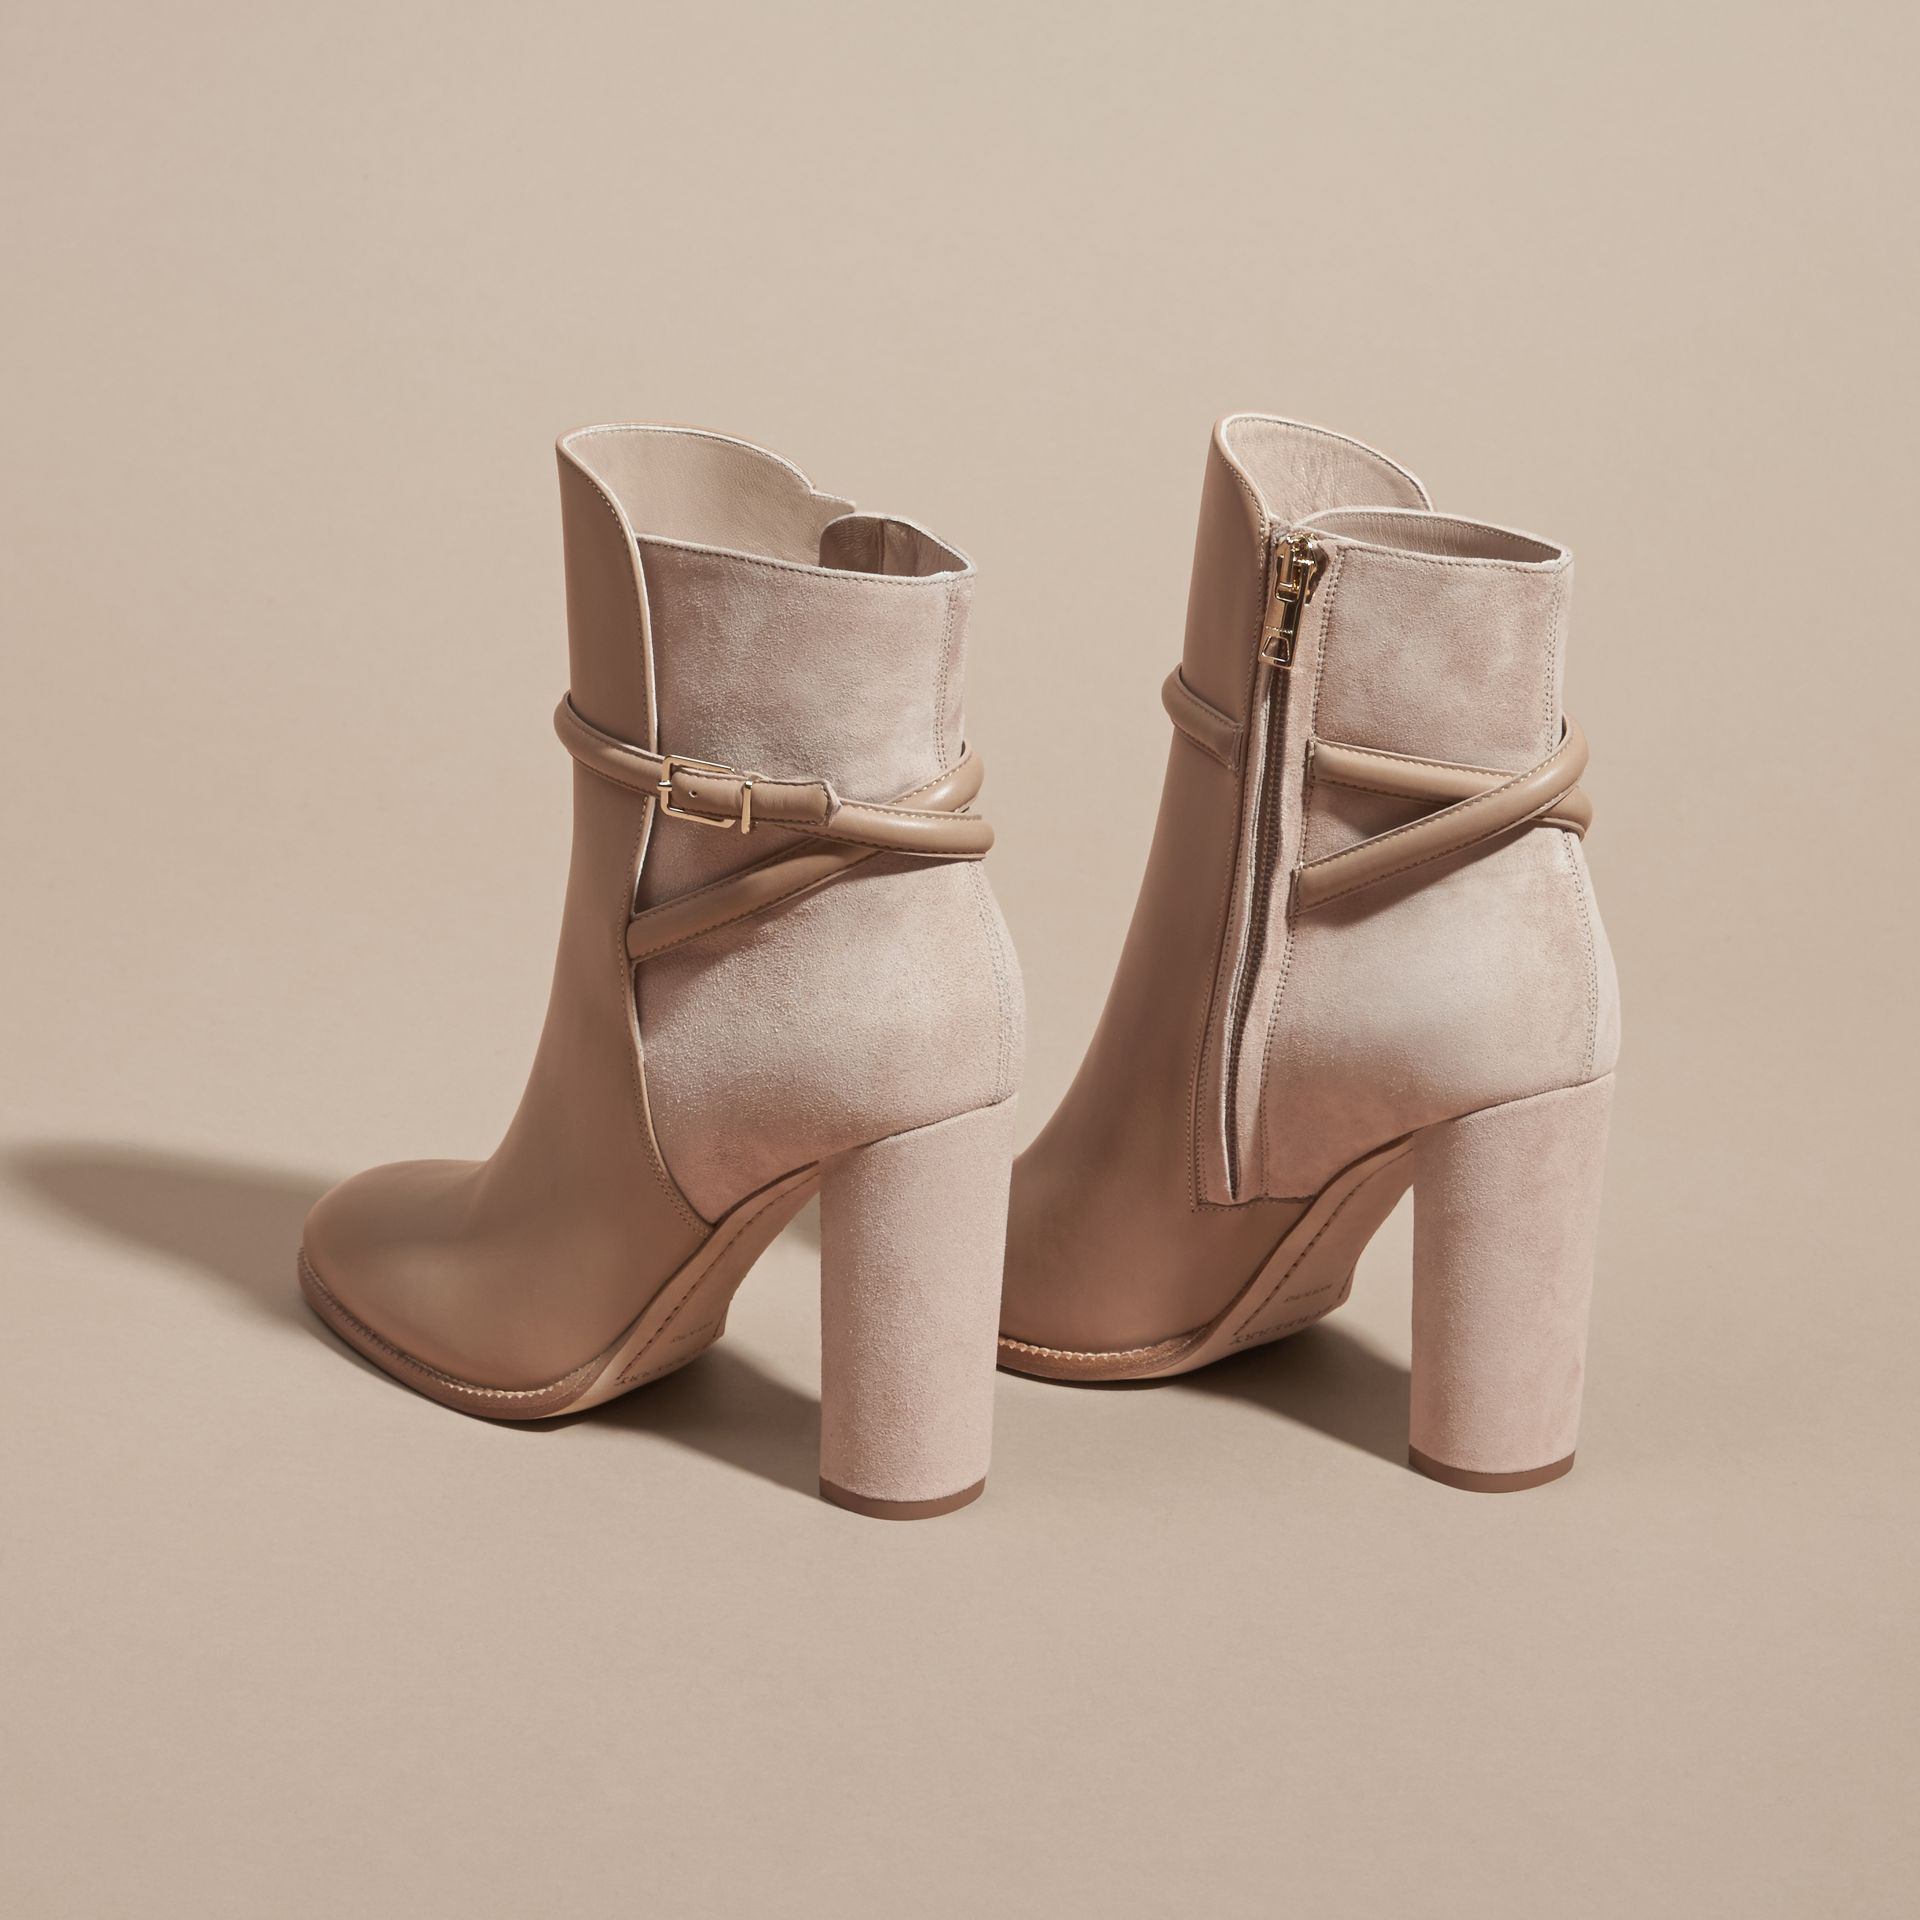 Light nude Strap Detail Leather and Suede Ankle Boots Light Nude - gallery image 4